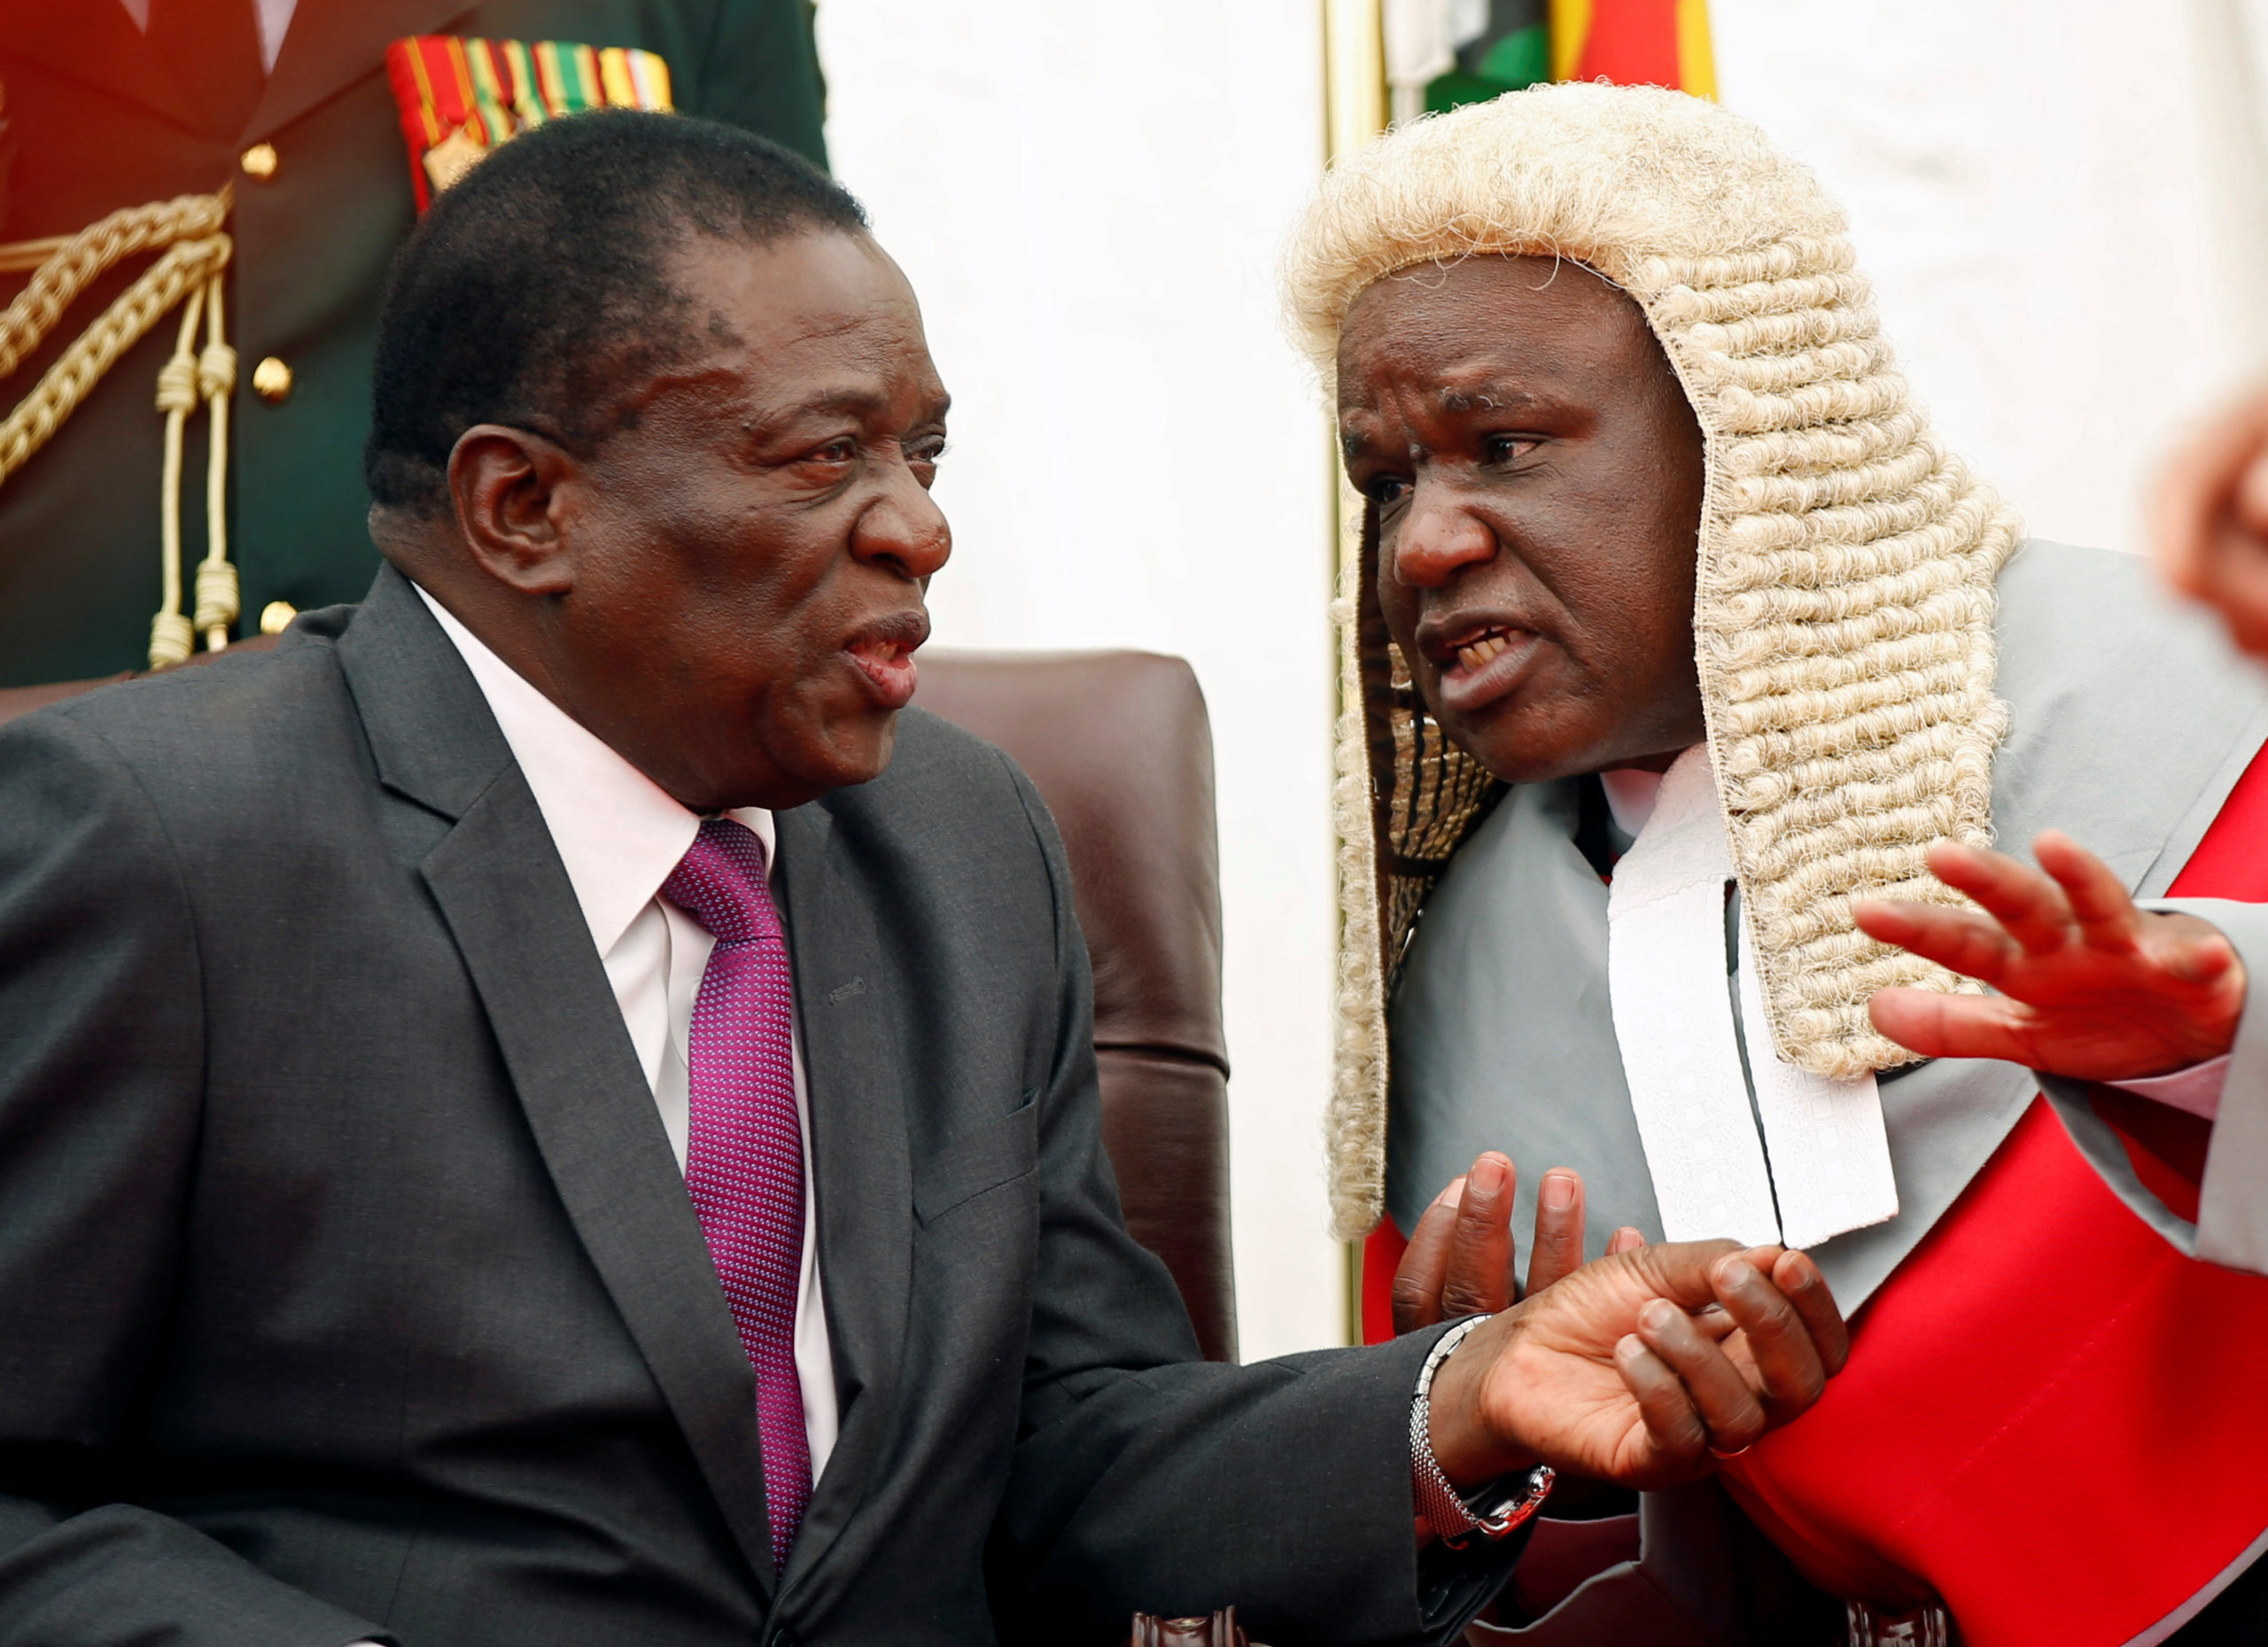 Zimbabwe court upholds chief justice's right to resume work despite age